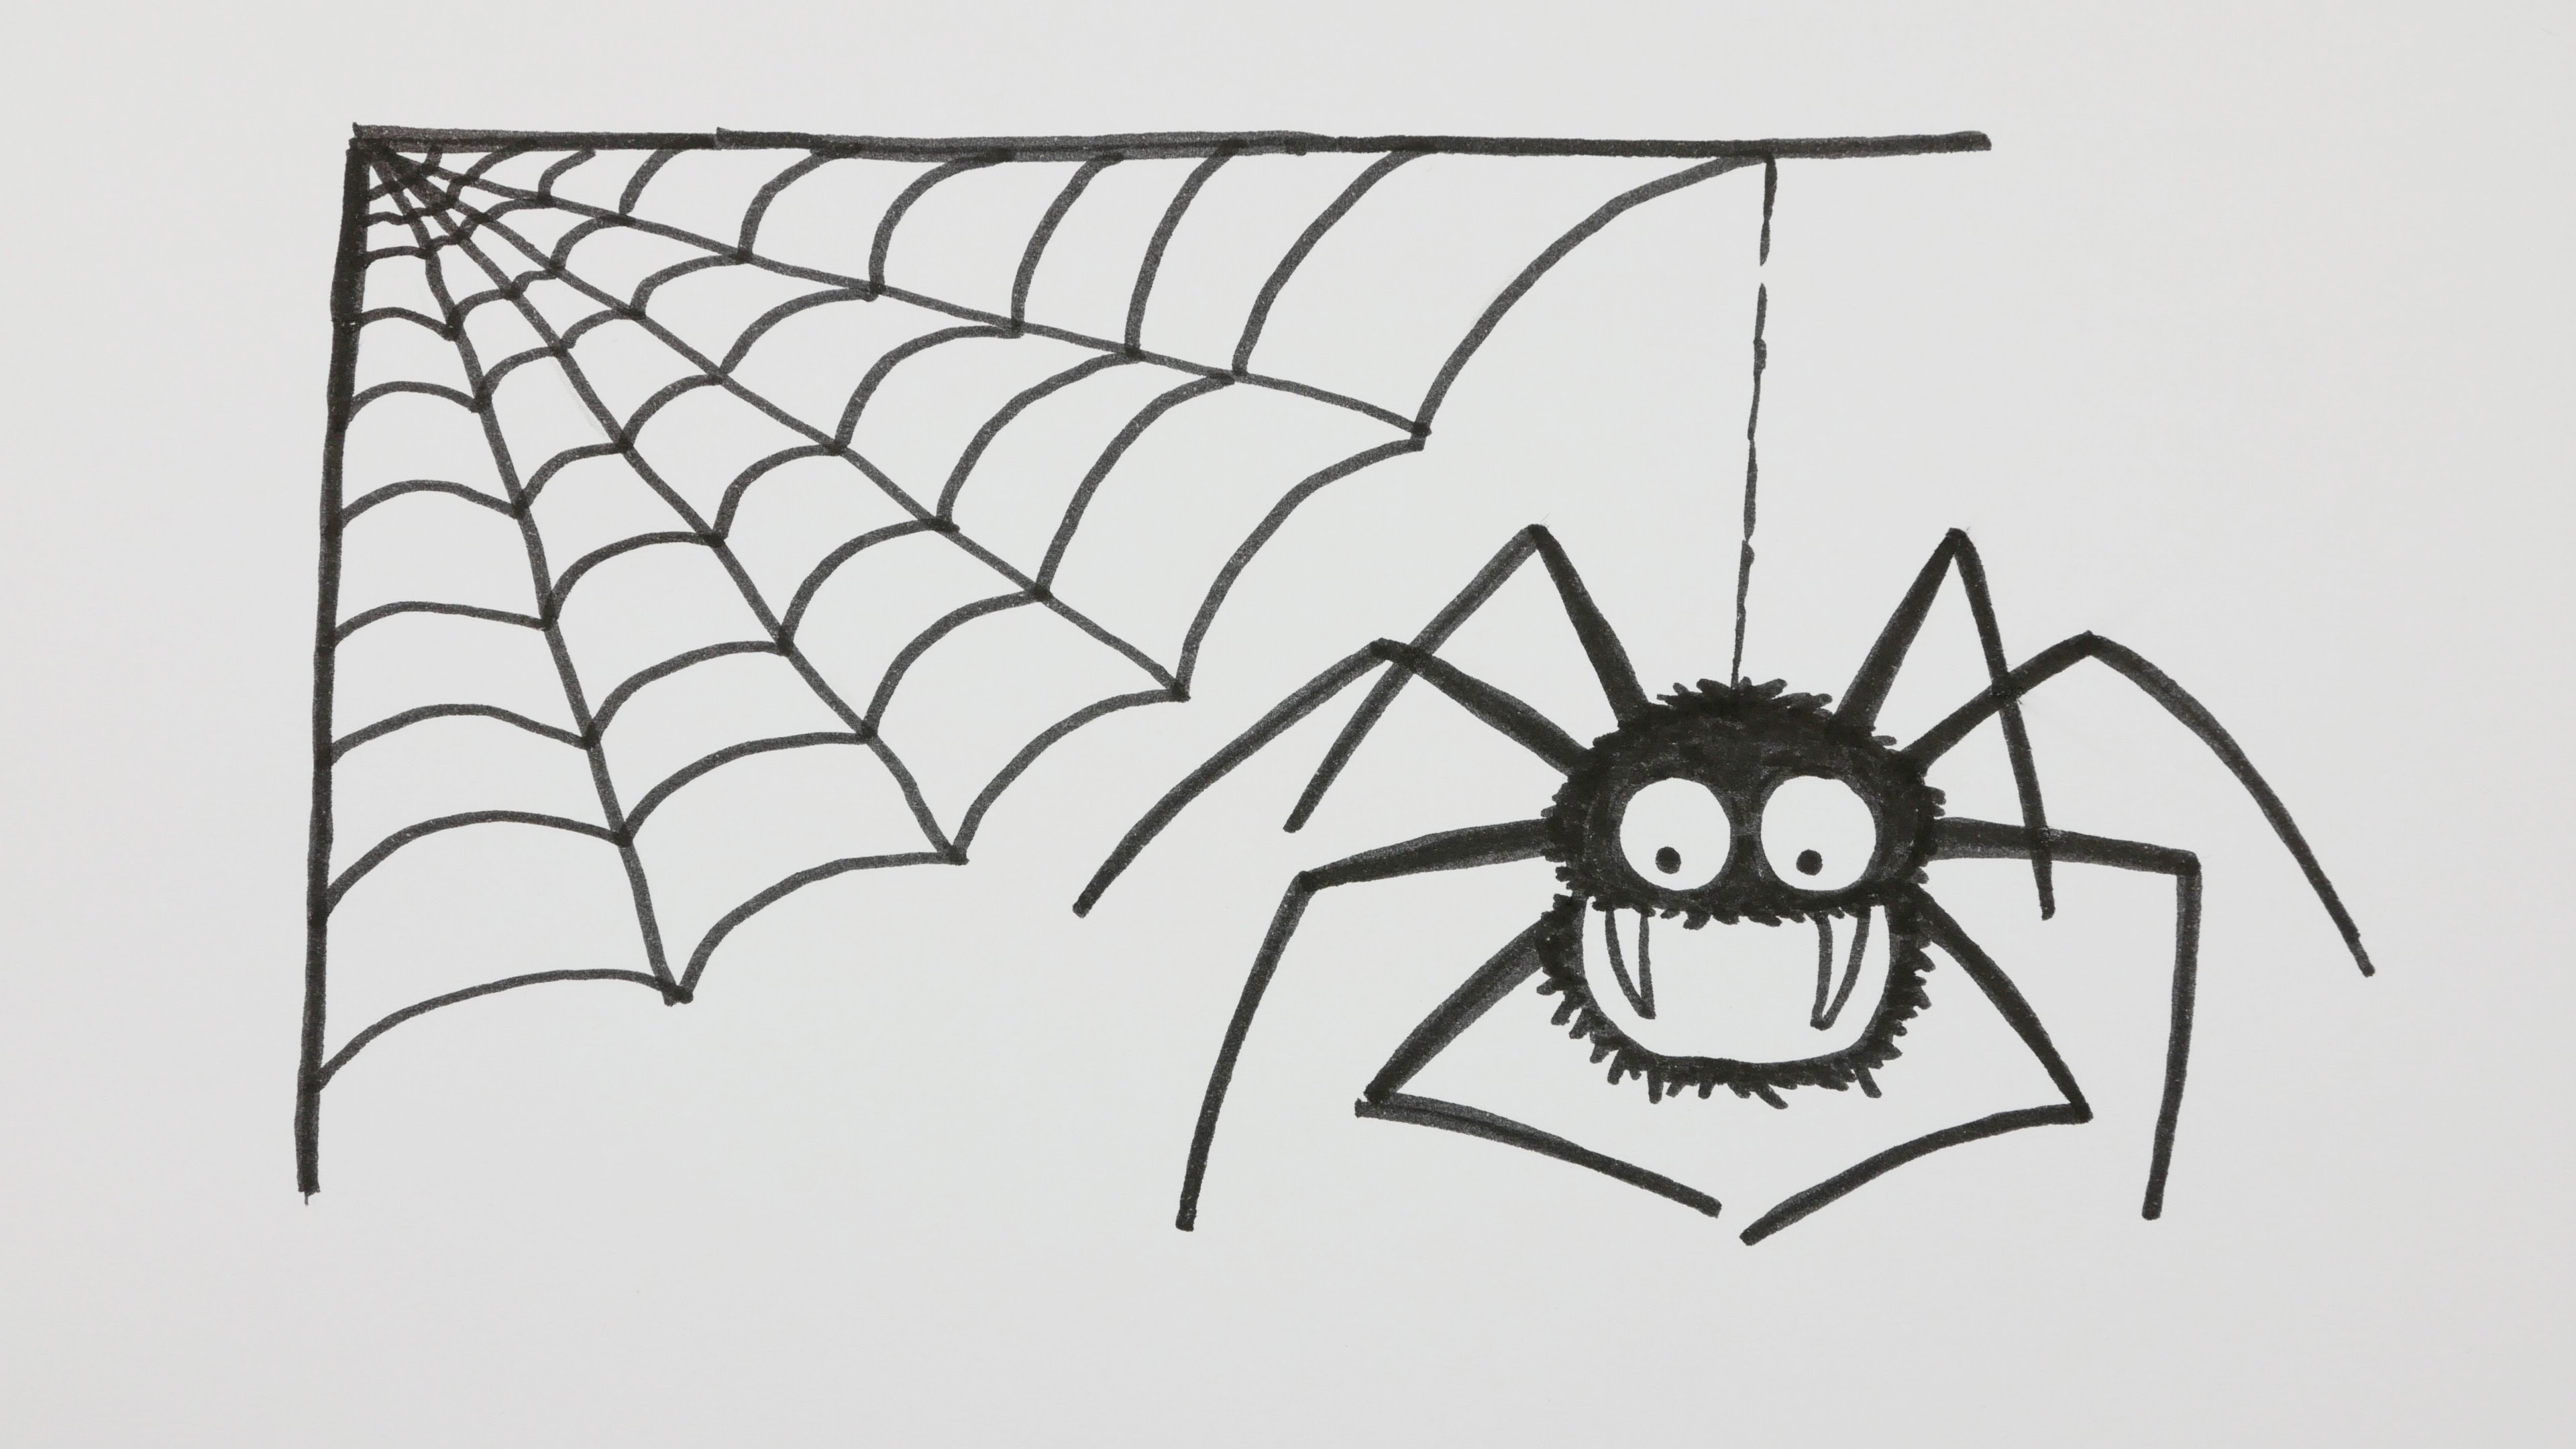 Drawn spider web real To with Cartoon Doodle How